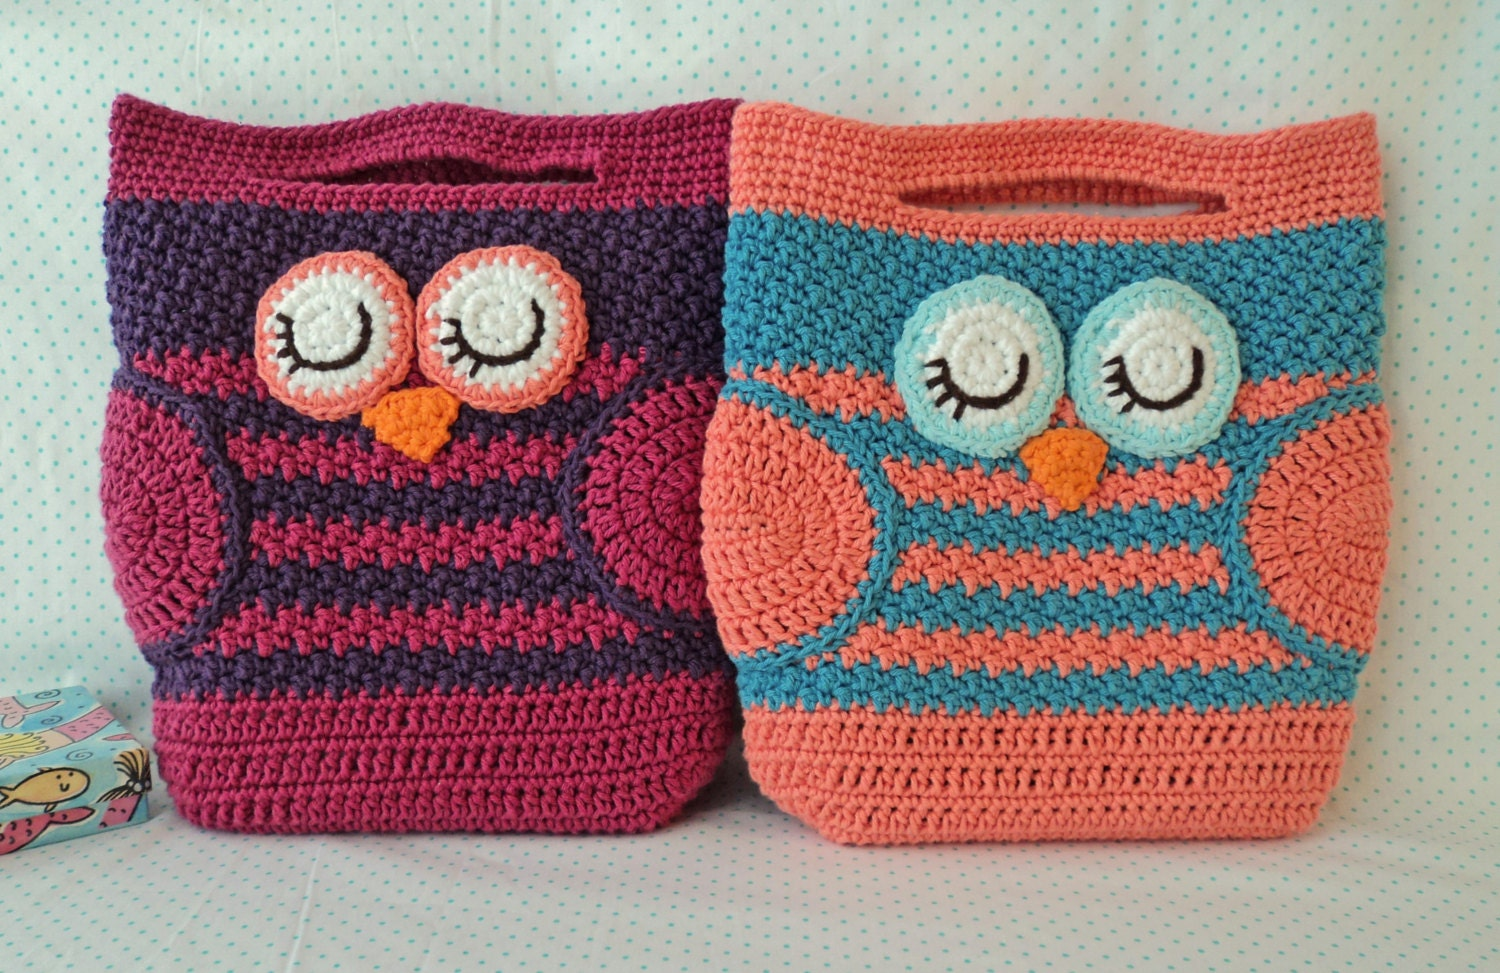 26 bags to knit crochet or sew etsy mini owl bag crochet pattern instant download bankloansurffo Image collections